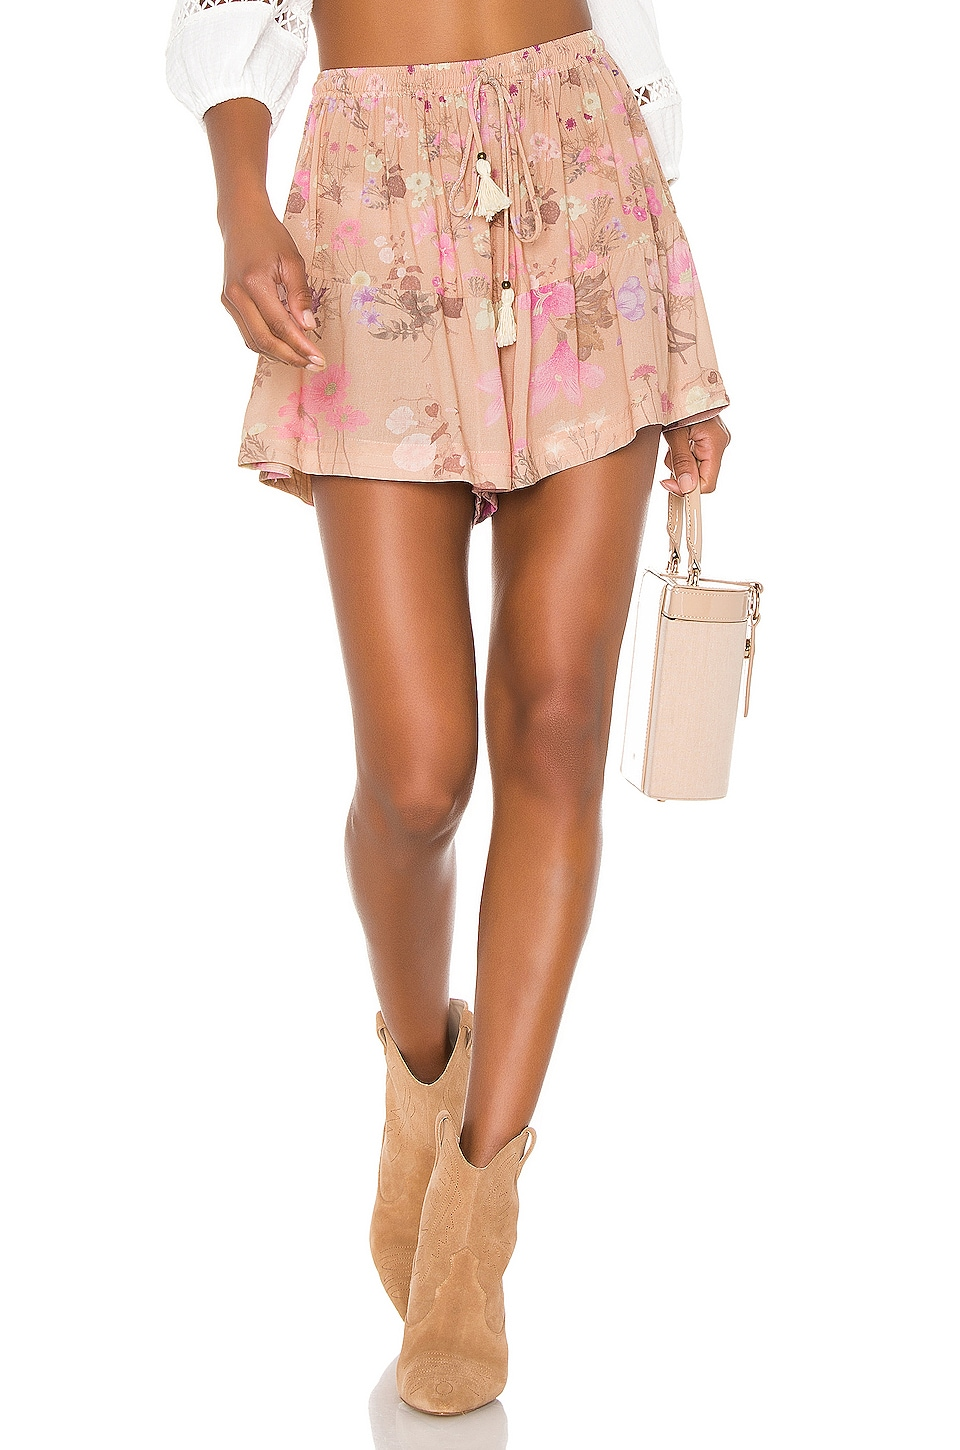 Spell & The Gypsy Collective Wild Bloom Shorts in Blush